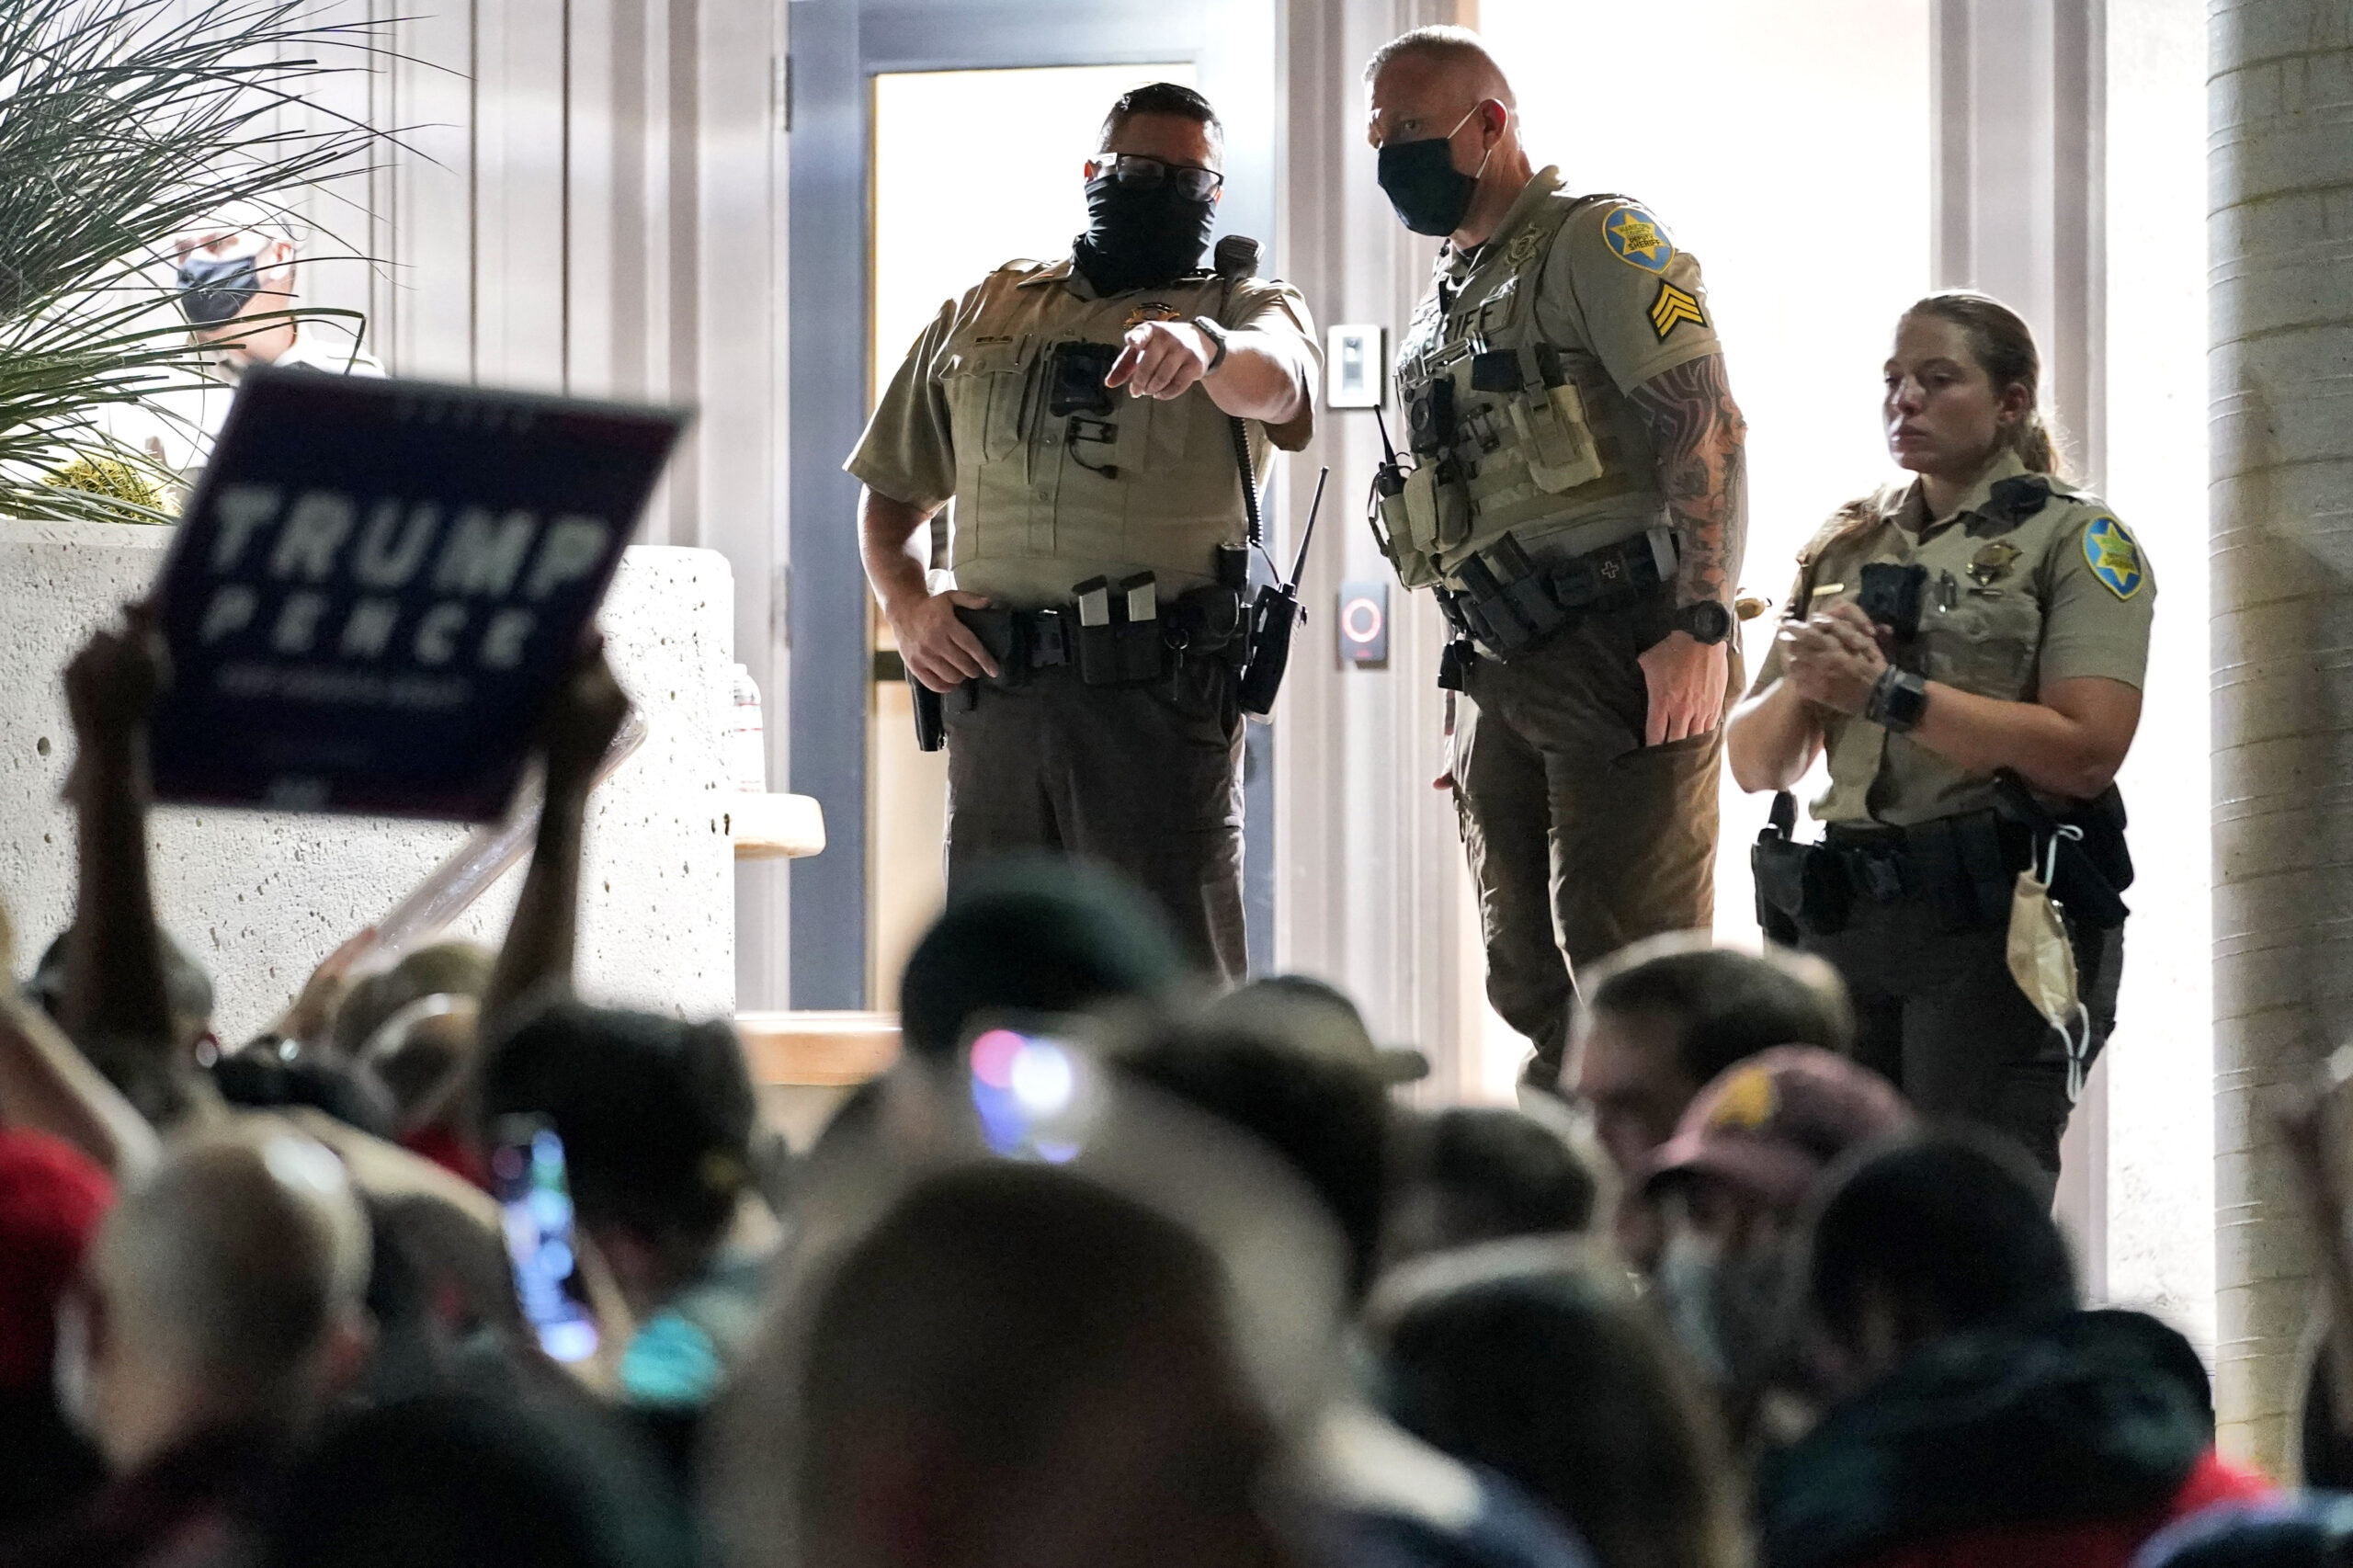 Trump supporters protest at Arizona voting center while ballots are tallied